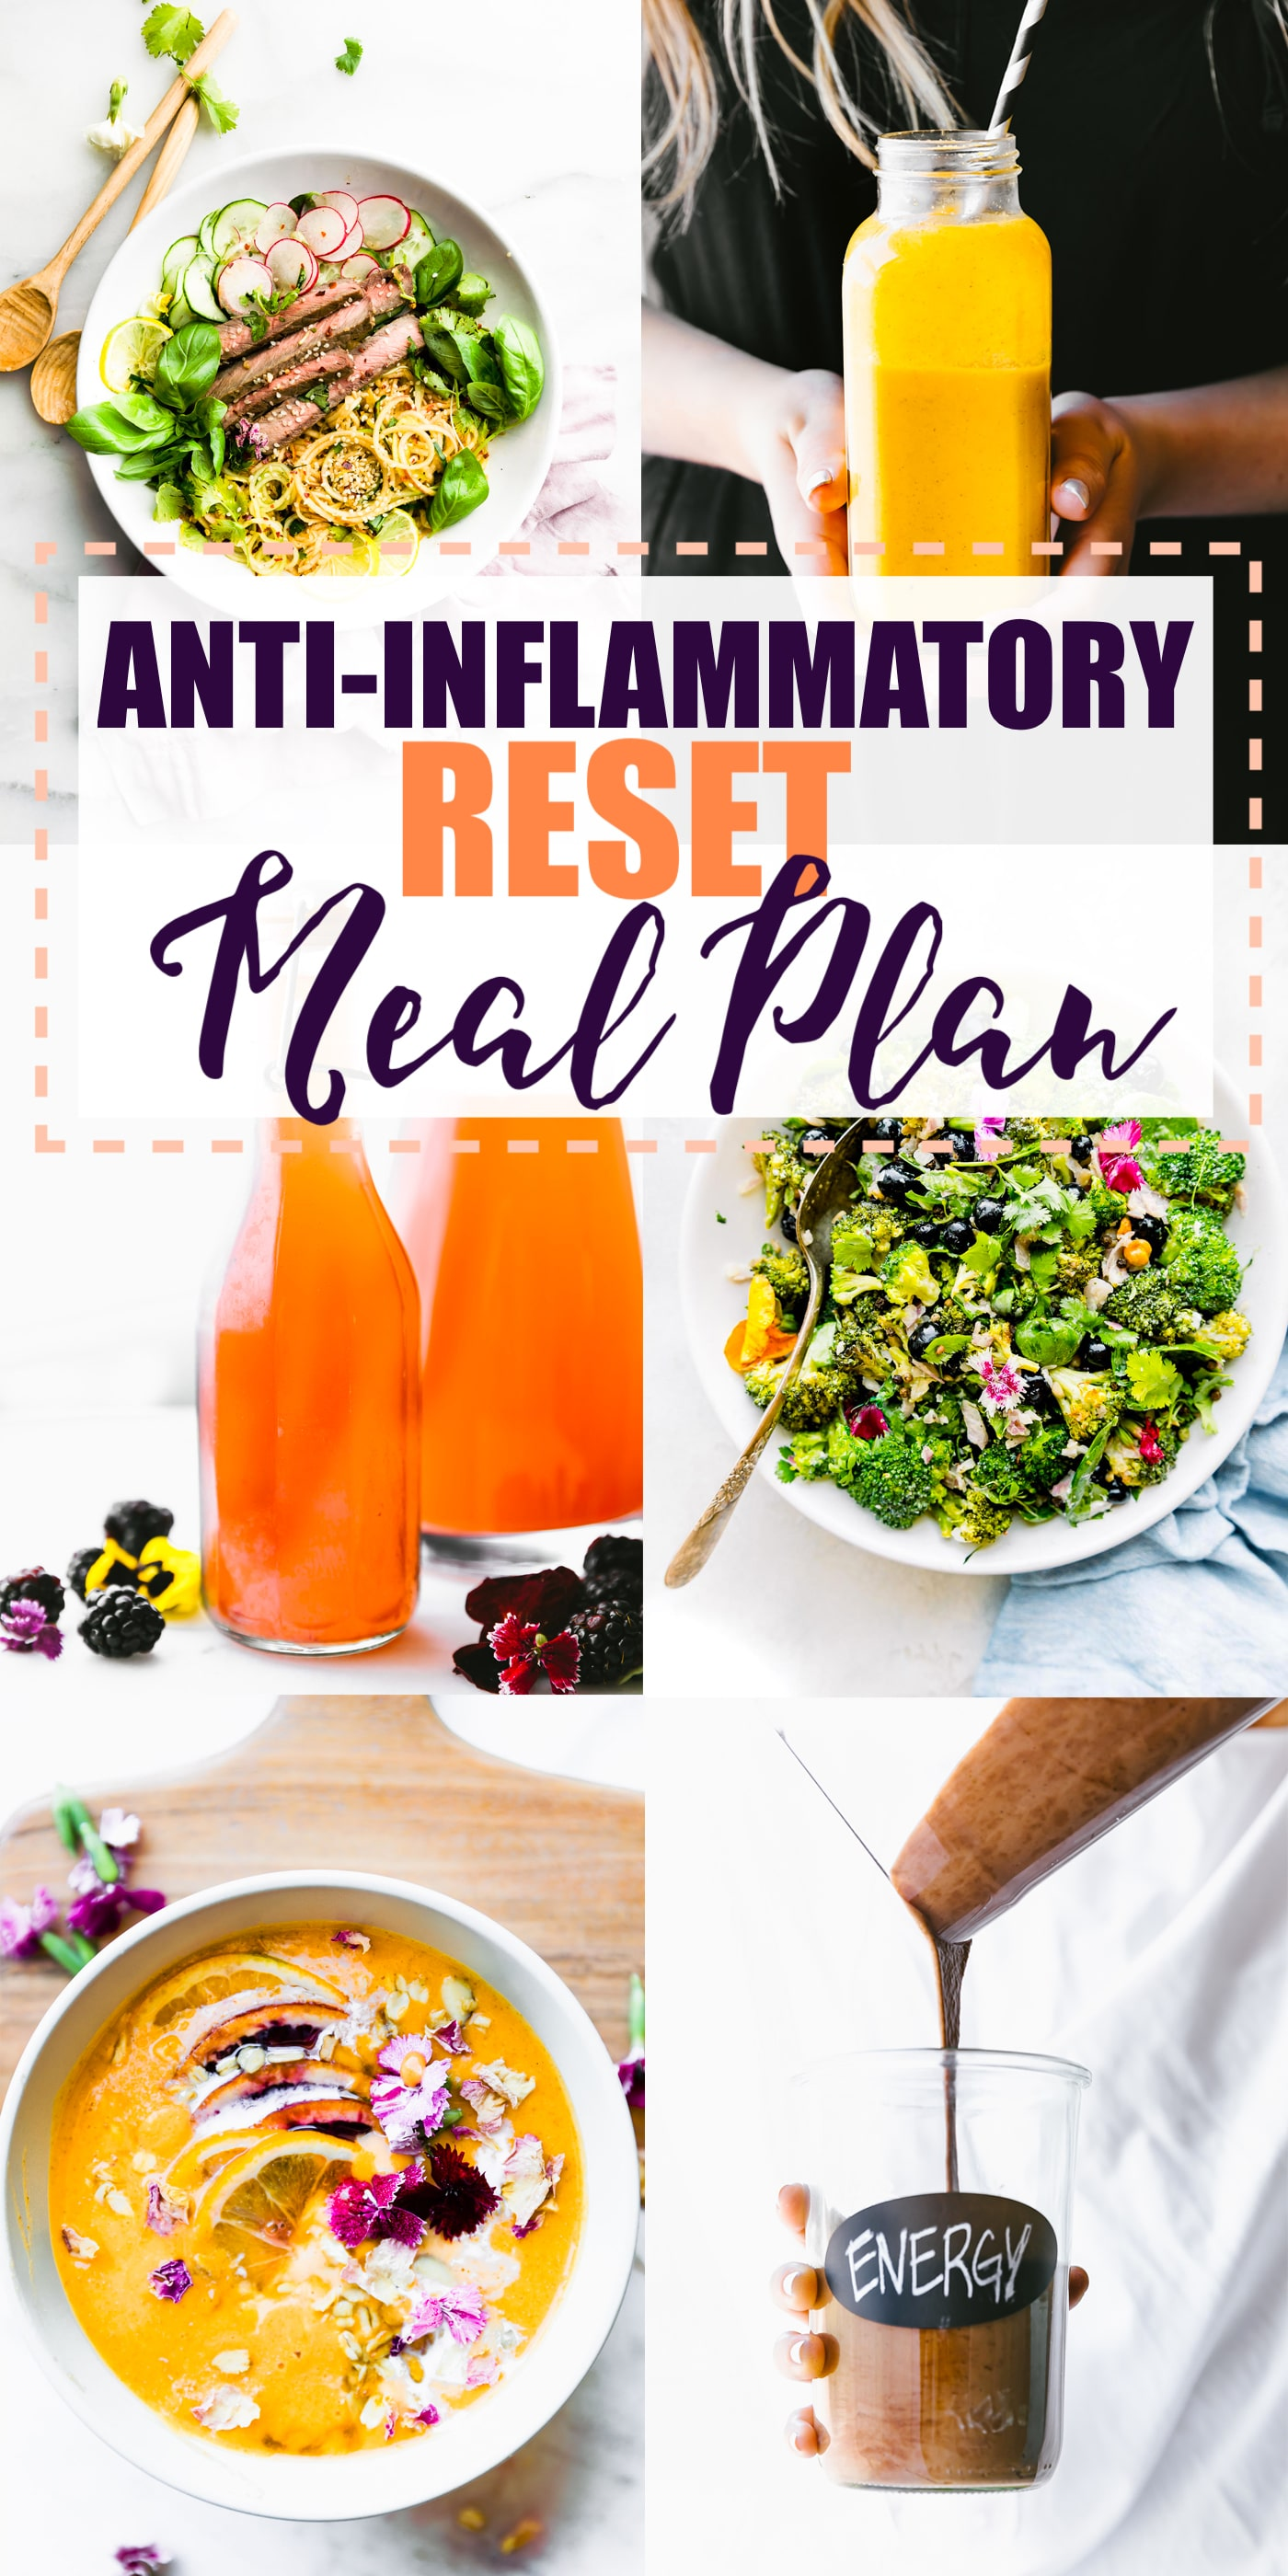 anti-inflammatory diet meal plan photo collage